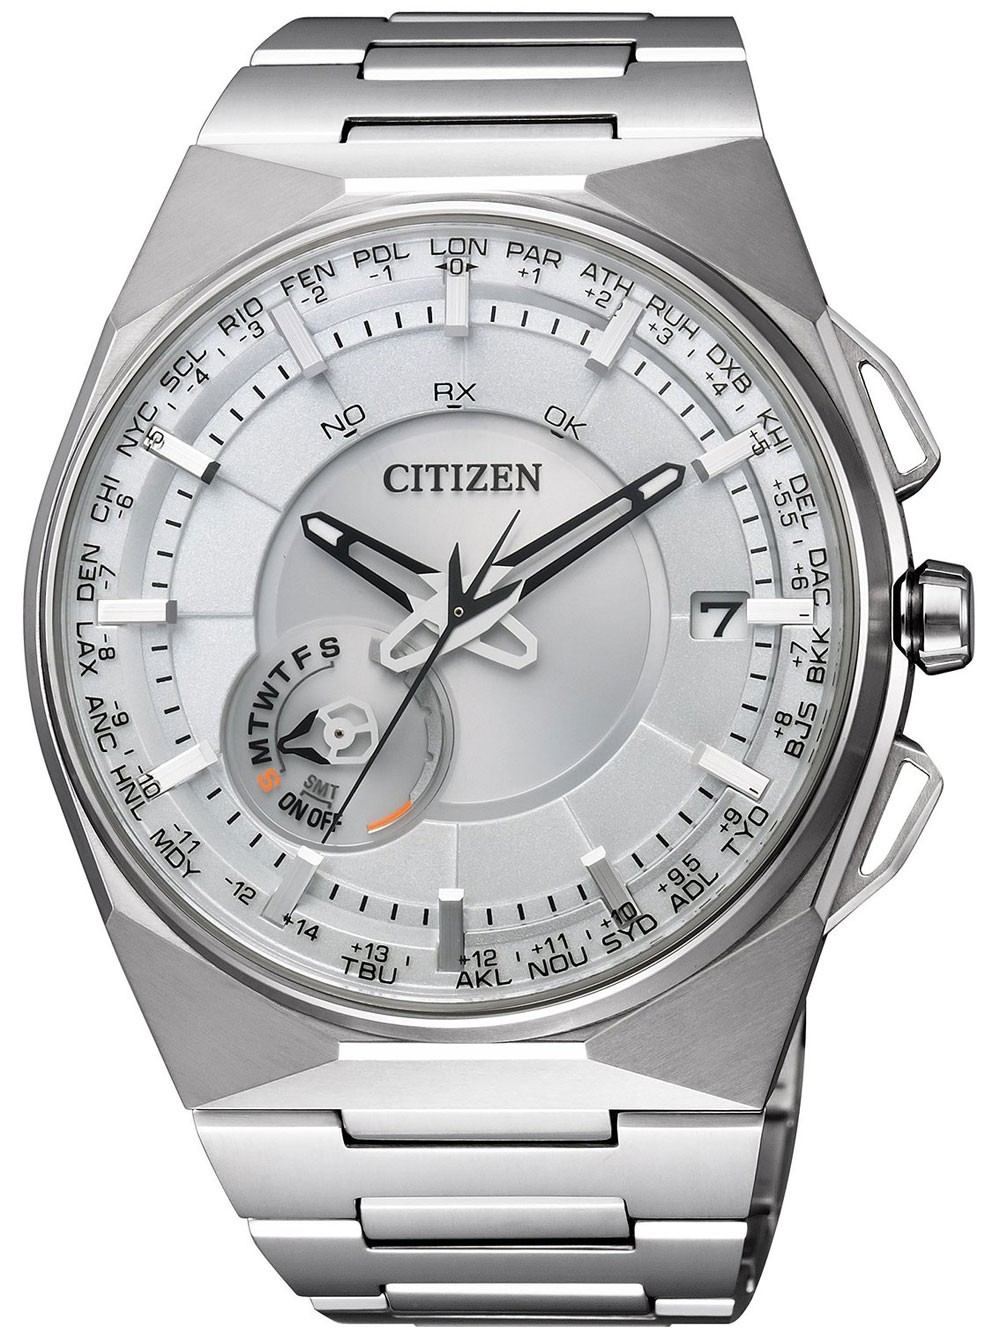 Citizen Eco-Drive Satellite Time System CC2001-57A 48 mm 100M